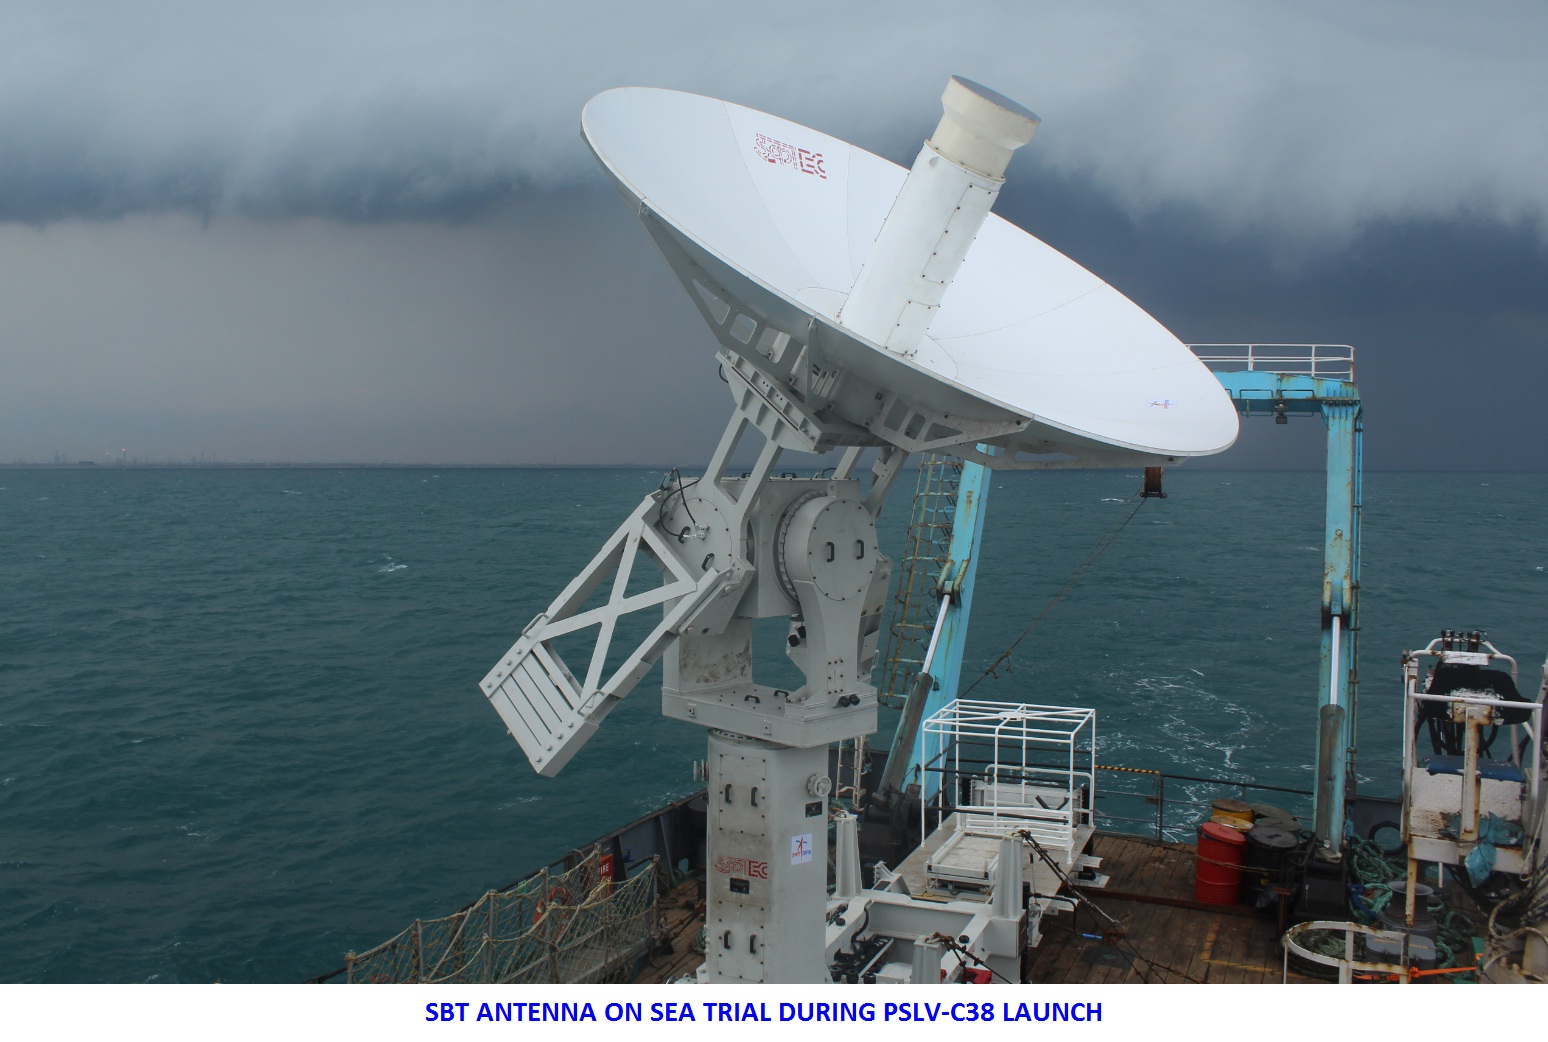 SBT Antenna on Sea Trial during PSLV-C38 Launch